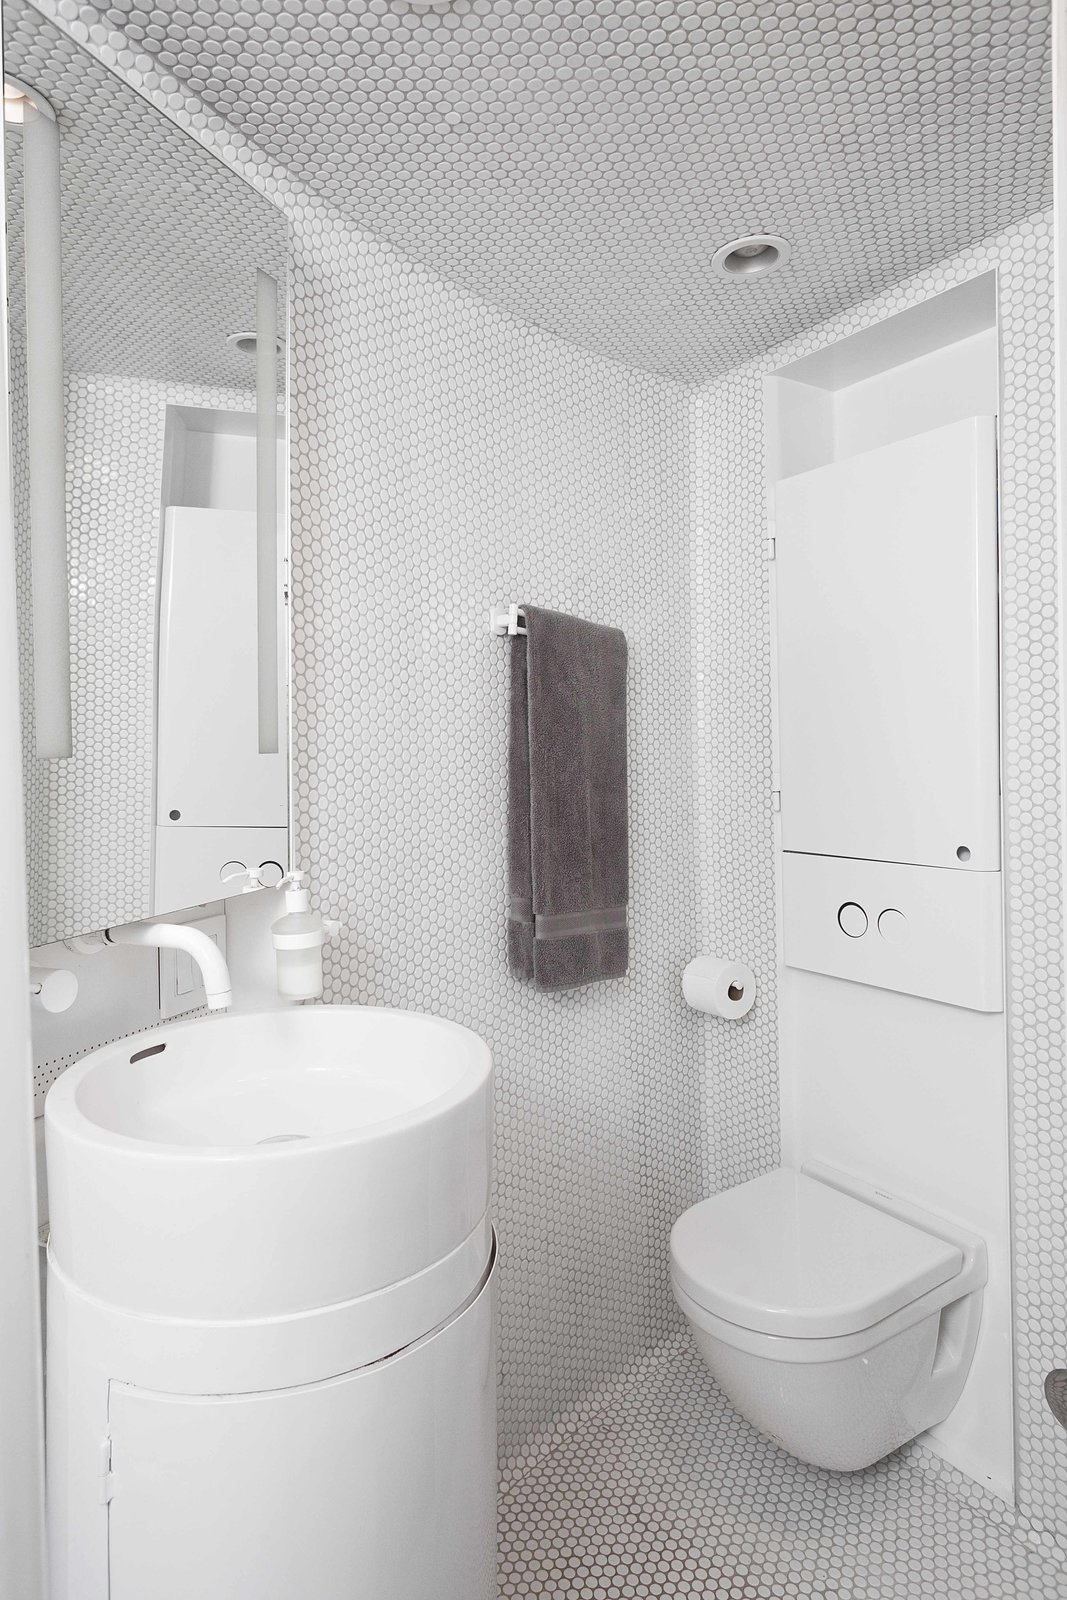 The bathroom features white ceramic glazed penny tile and a Duravit toilet with a custom vanity.  You Won't Believe the Cozy Home Inside This Converted Grain Silo by Allie Weiss